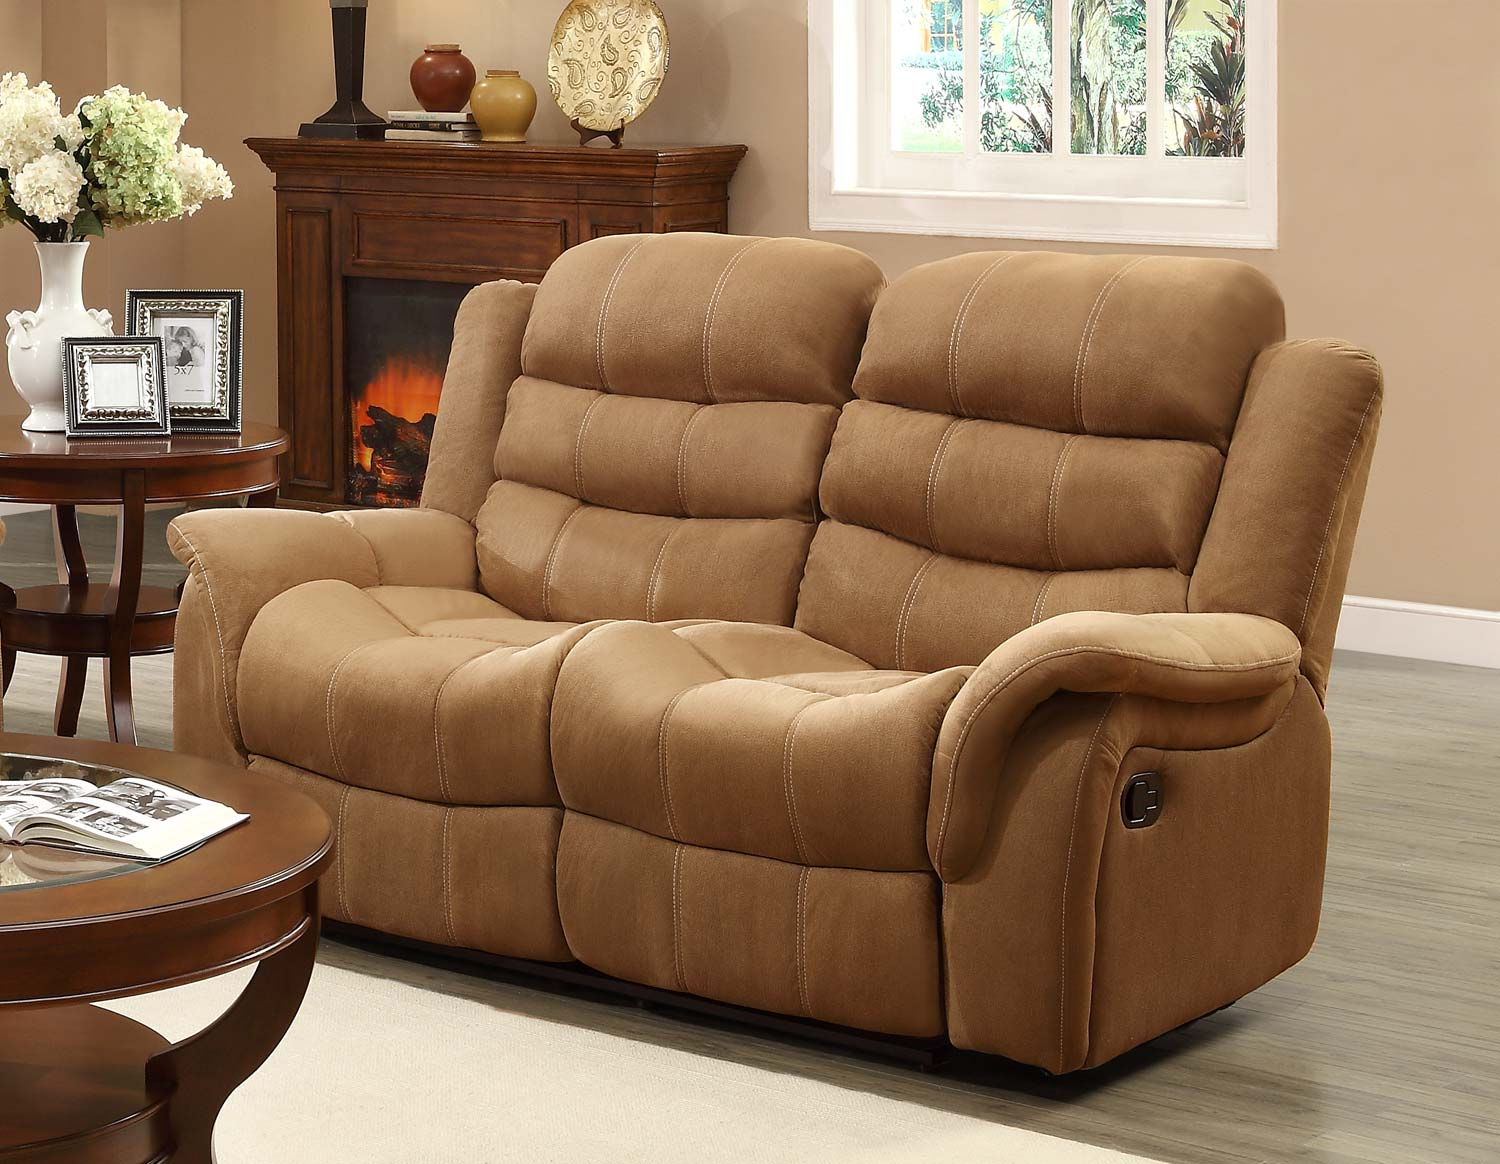 Homelegance Huxley Love Seat Double Recliner - Brown 9777BR-2 |  Traveller Location